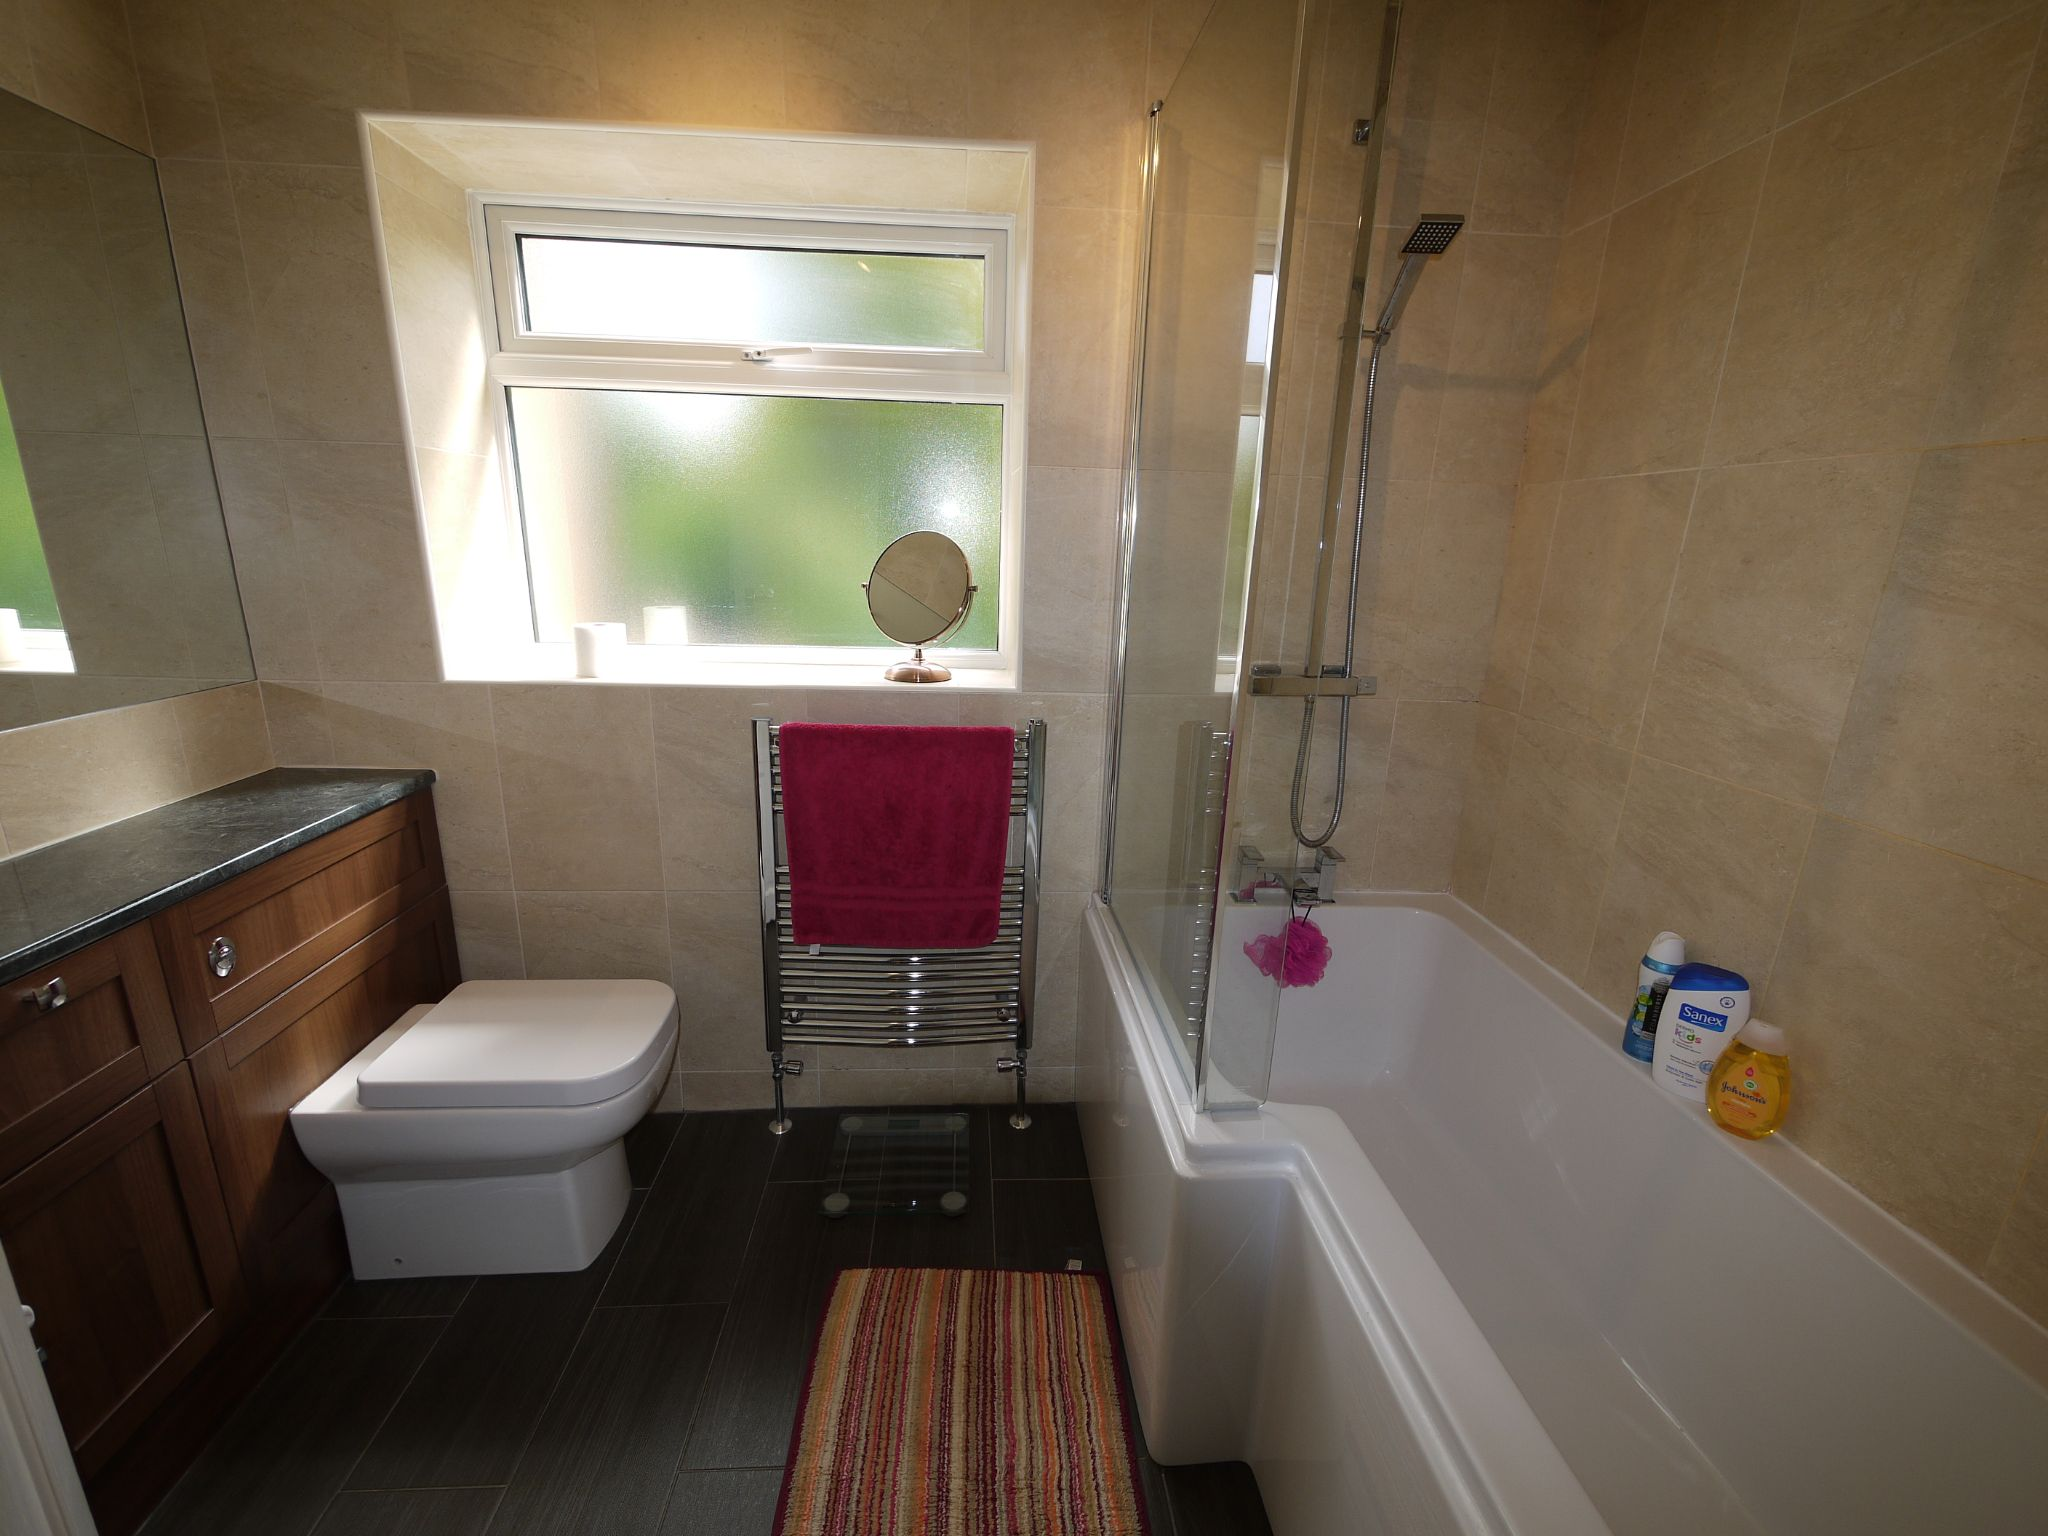 4 bedroom semi-detached house For Sale in Brighouse - Bathroom.